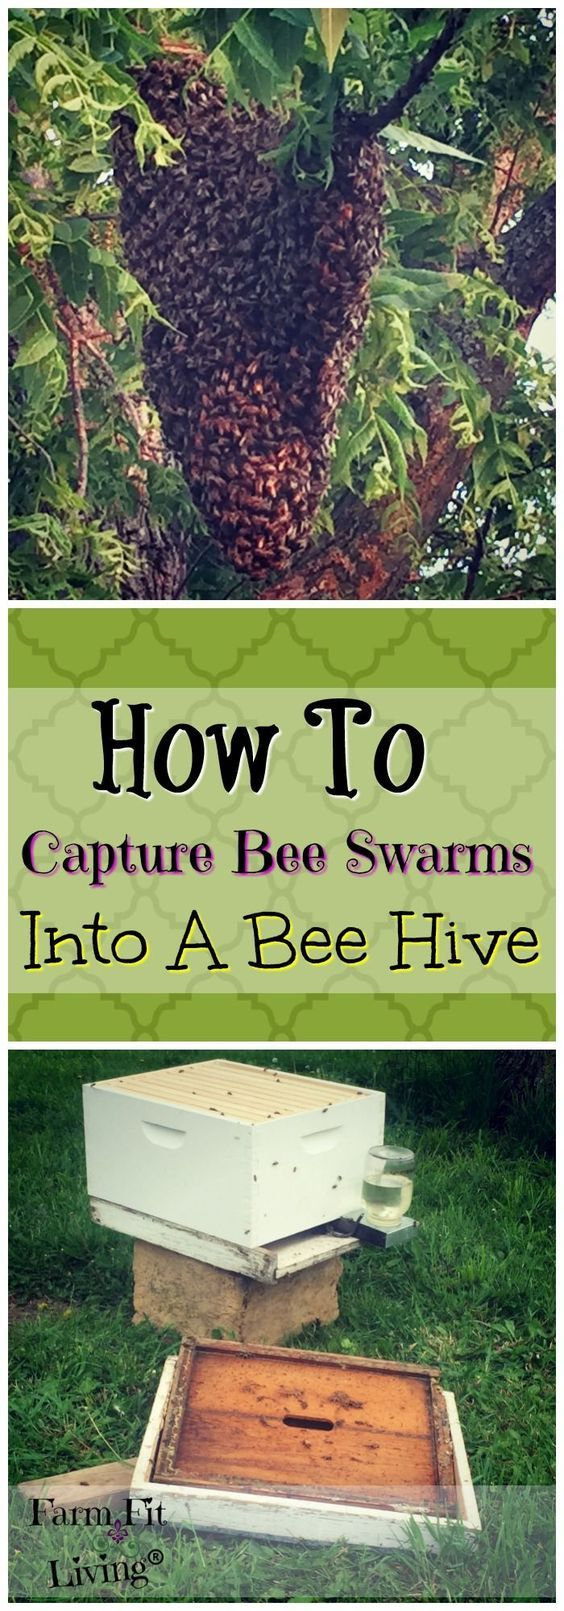 Have you ever had the opportunity to capture bee swarms? Here are some tips for how to capture bee swarms into a bee hive. via @www.pinterest.com/farmfitliving